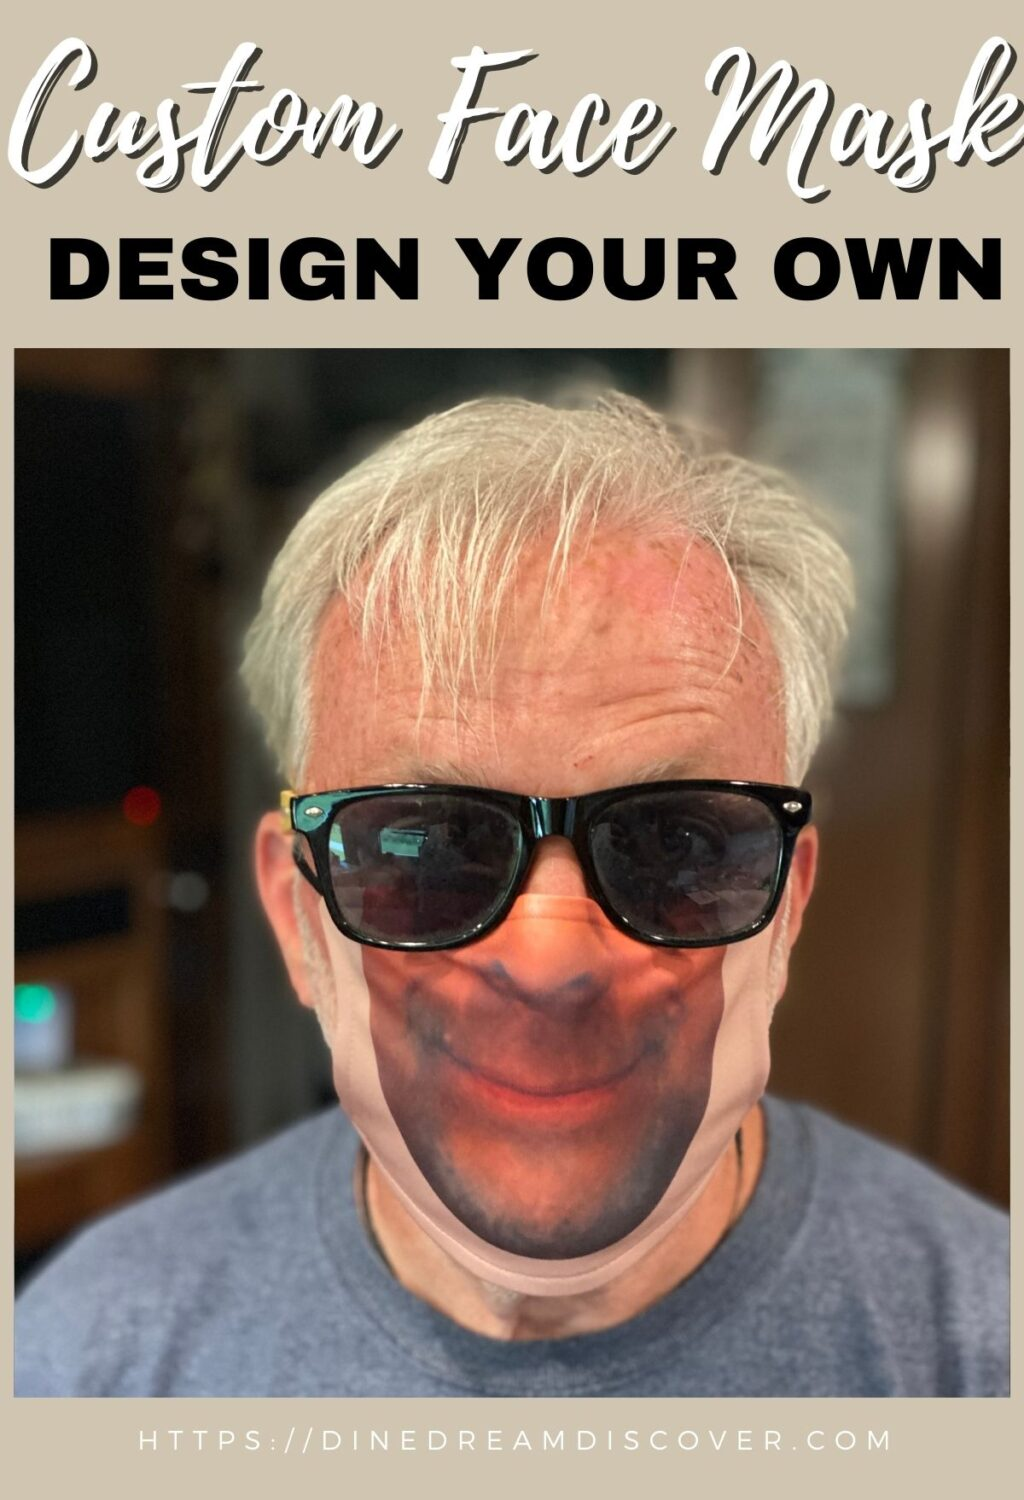 Design Your Own Mask